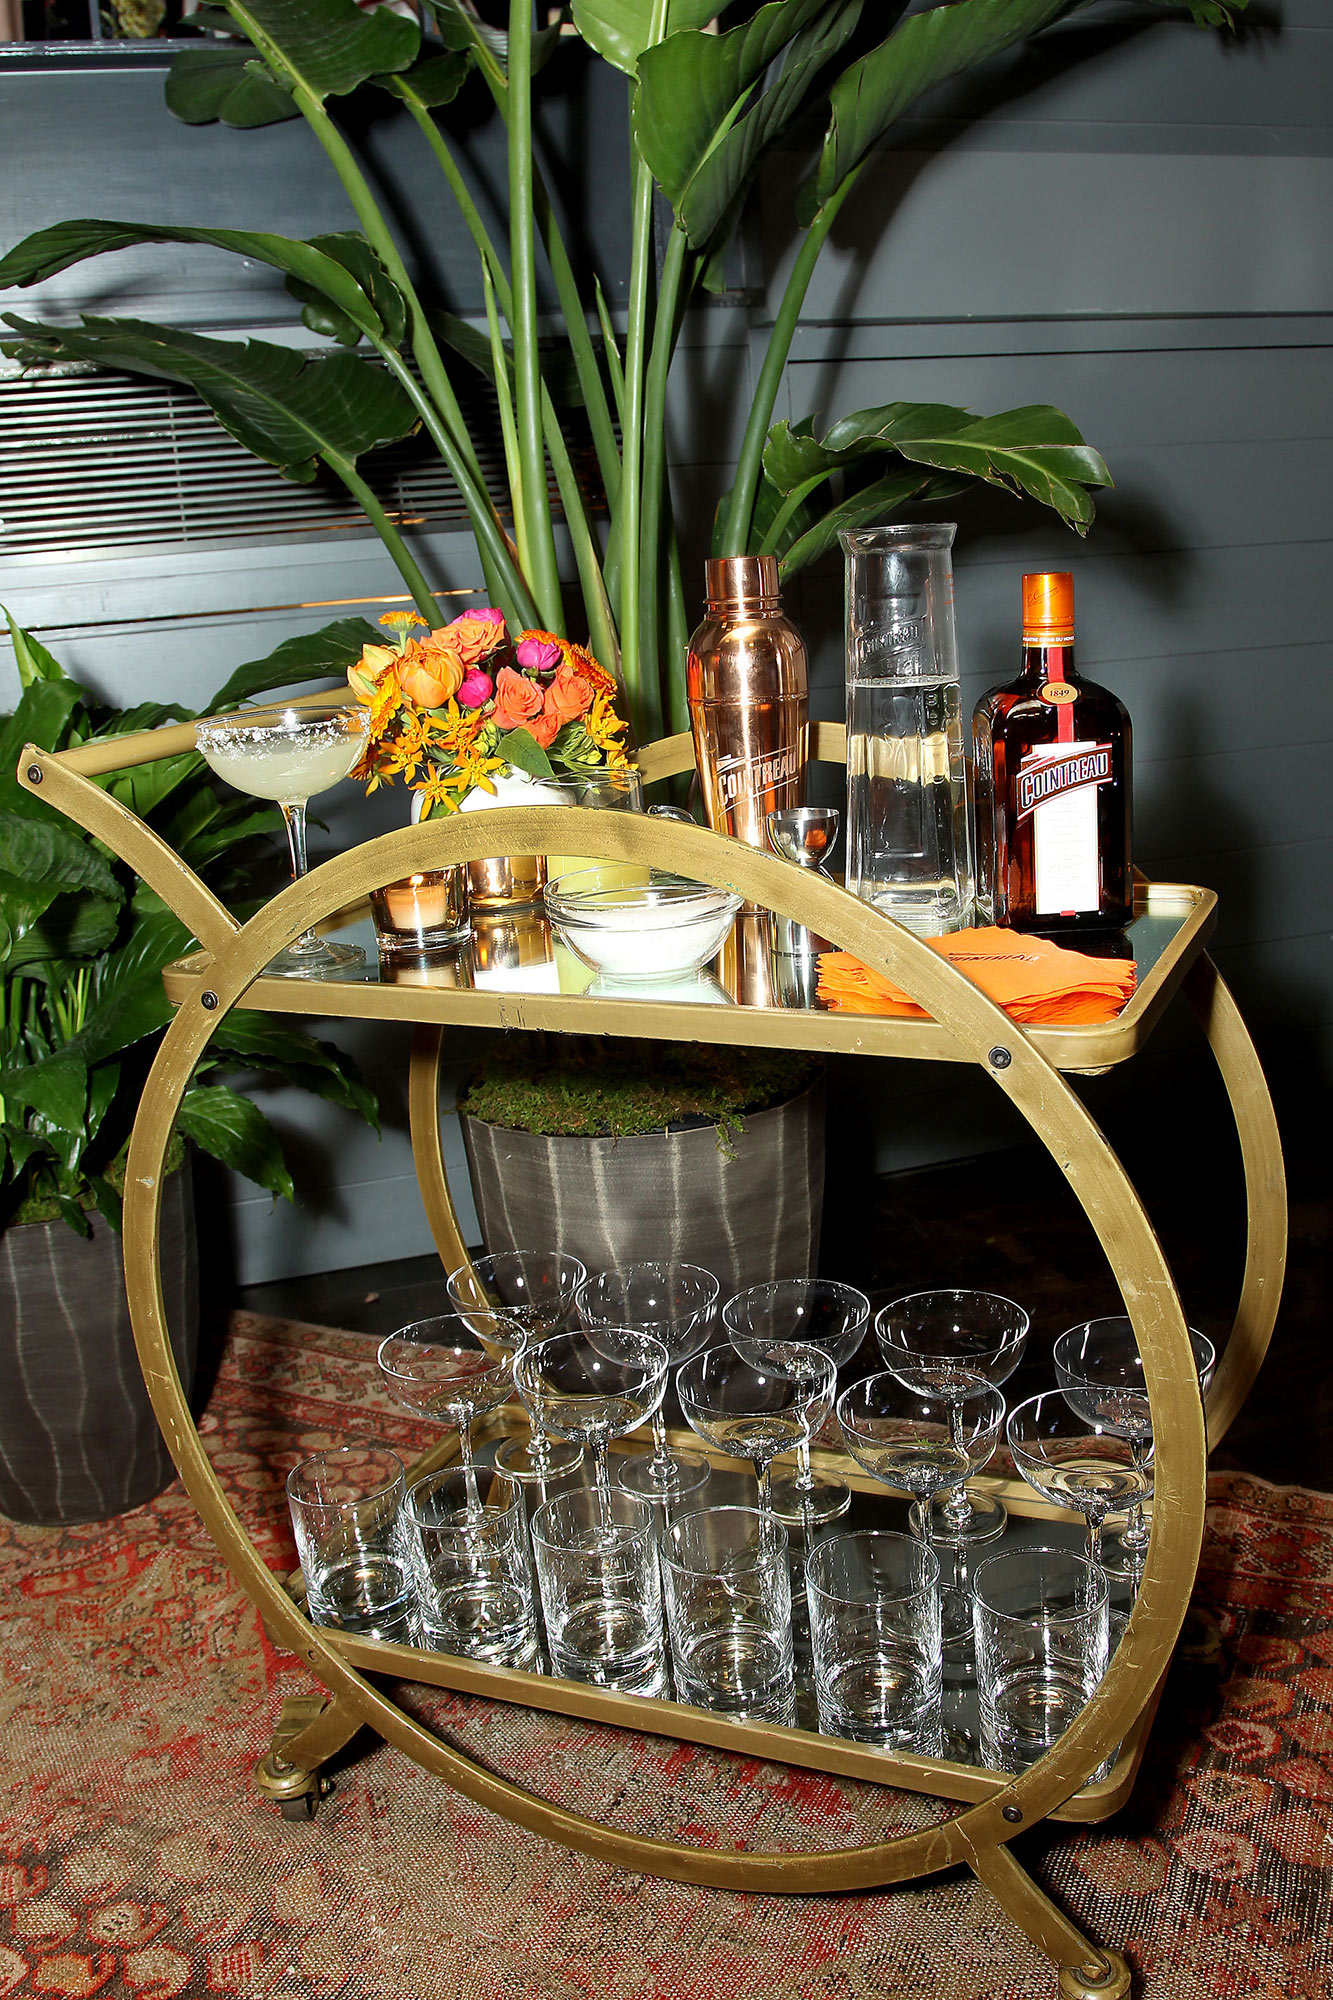 Jeremiah Brent and Cointreau Celebrate the Art of La Soiree